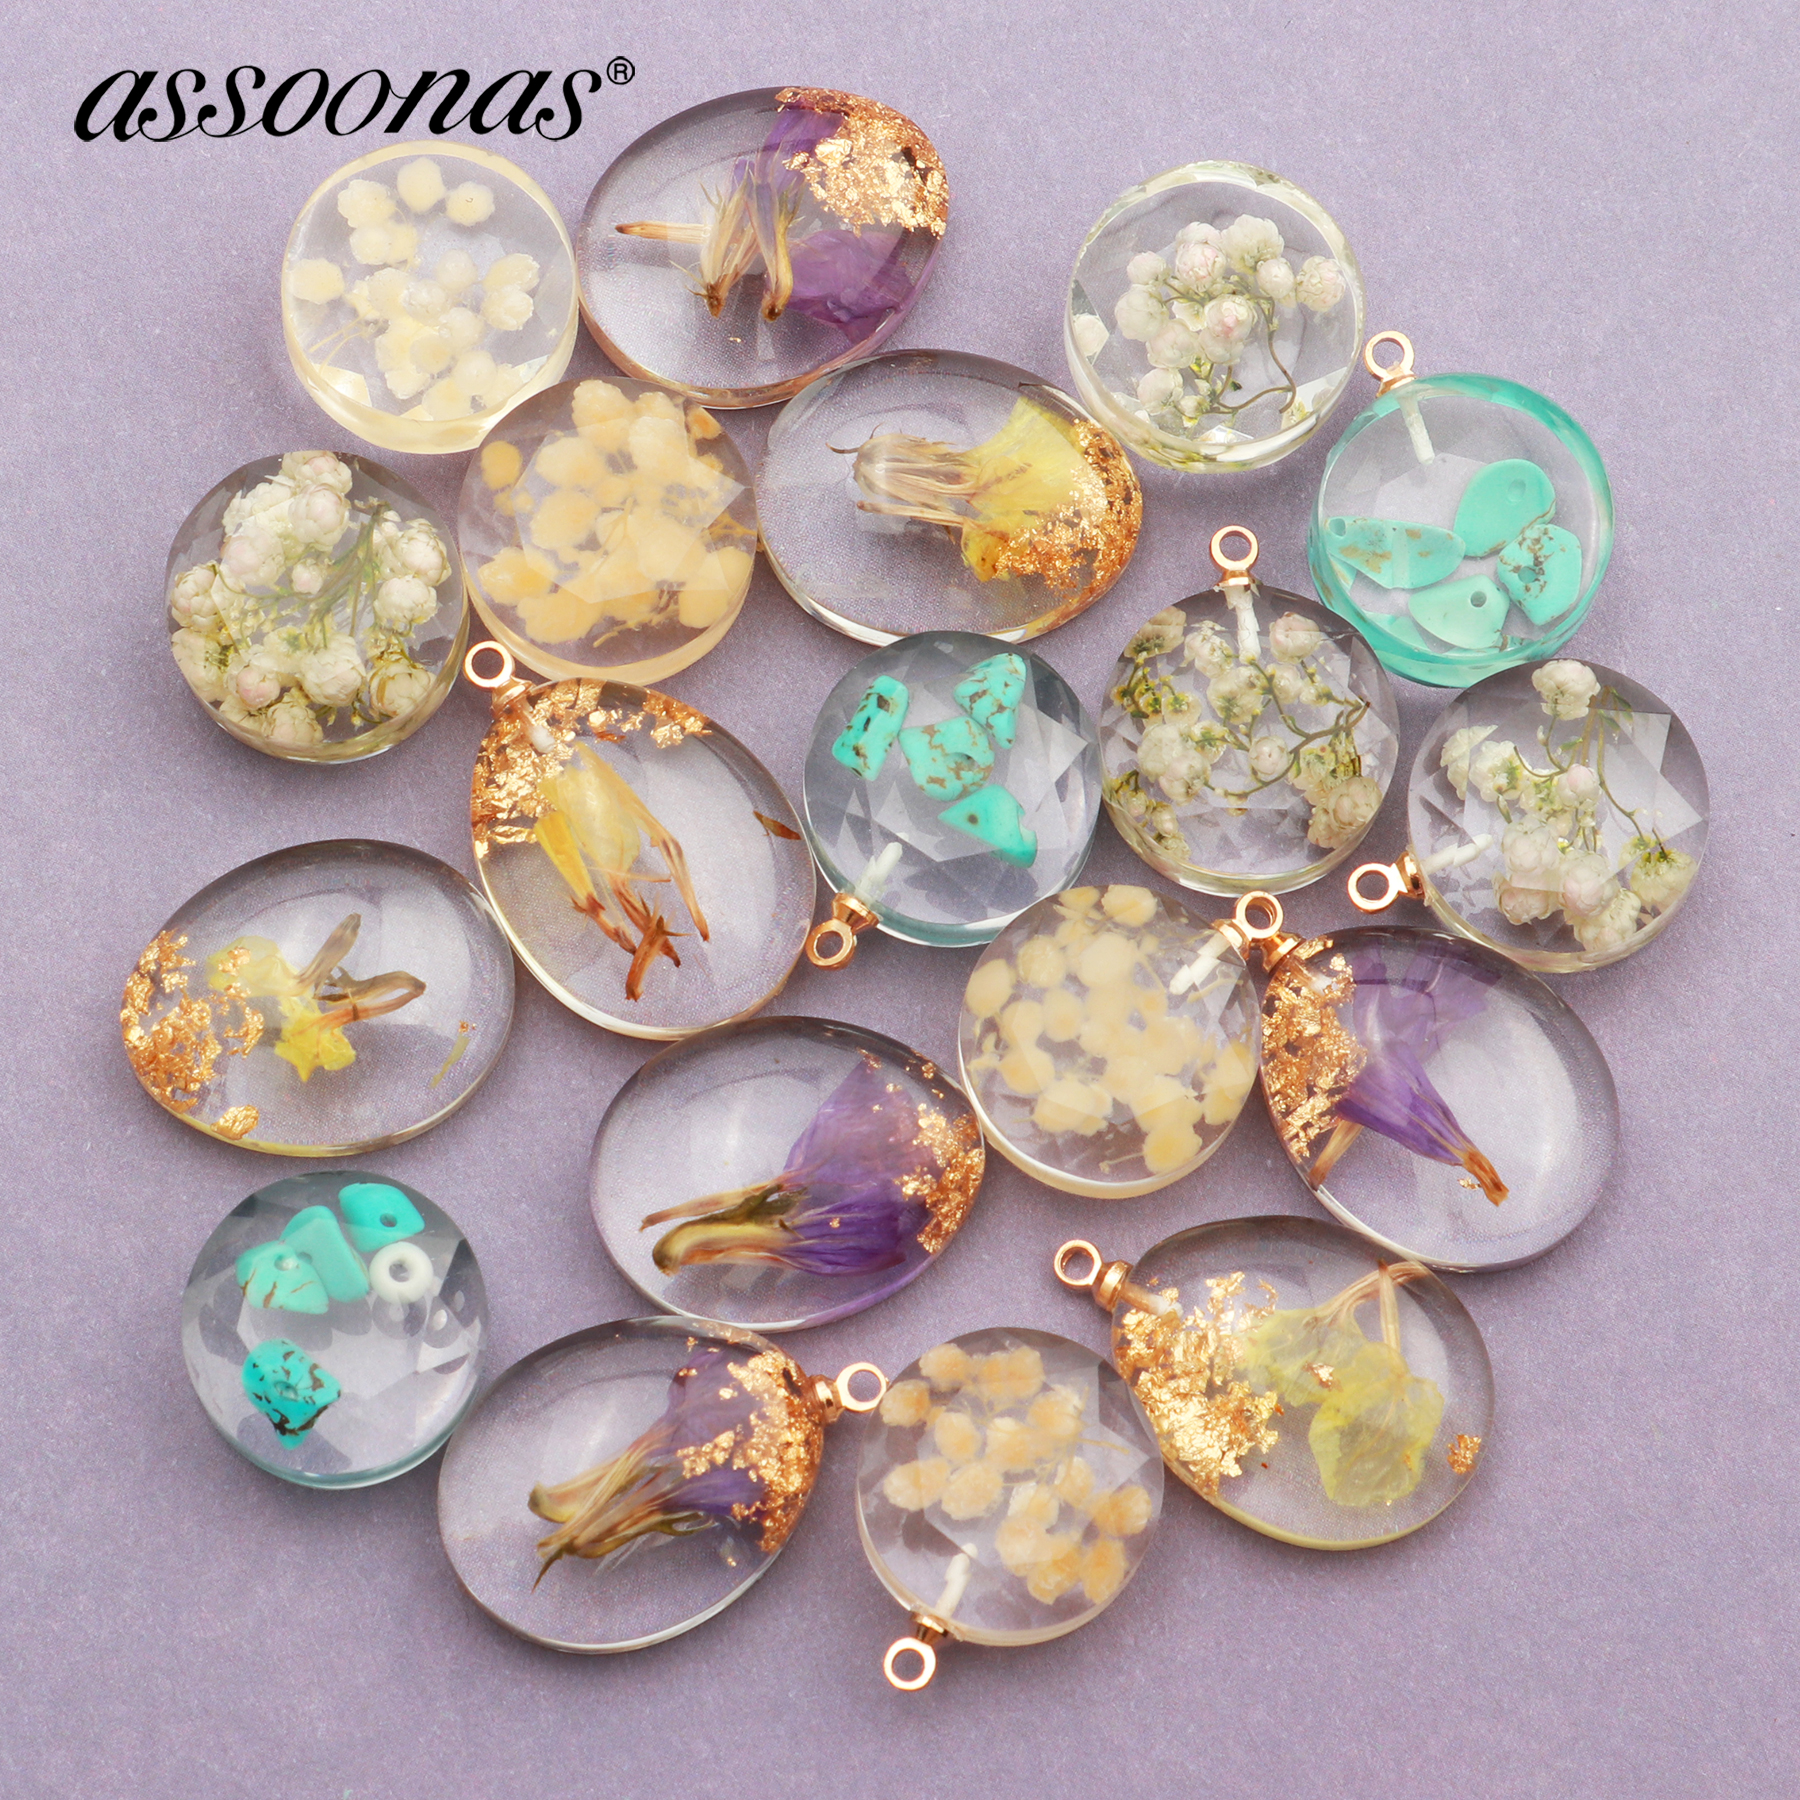 Assoonas M404,jewelry Accessories,diy Flower Pendant,jewelry Findings,uv Epoxy,hand Made,jewelry Making,diy Earrings,10pcs/lot